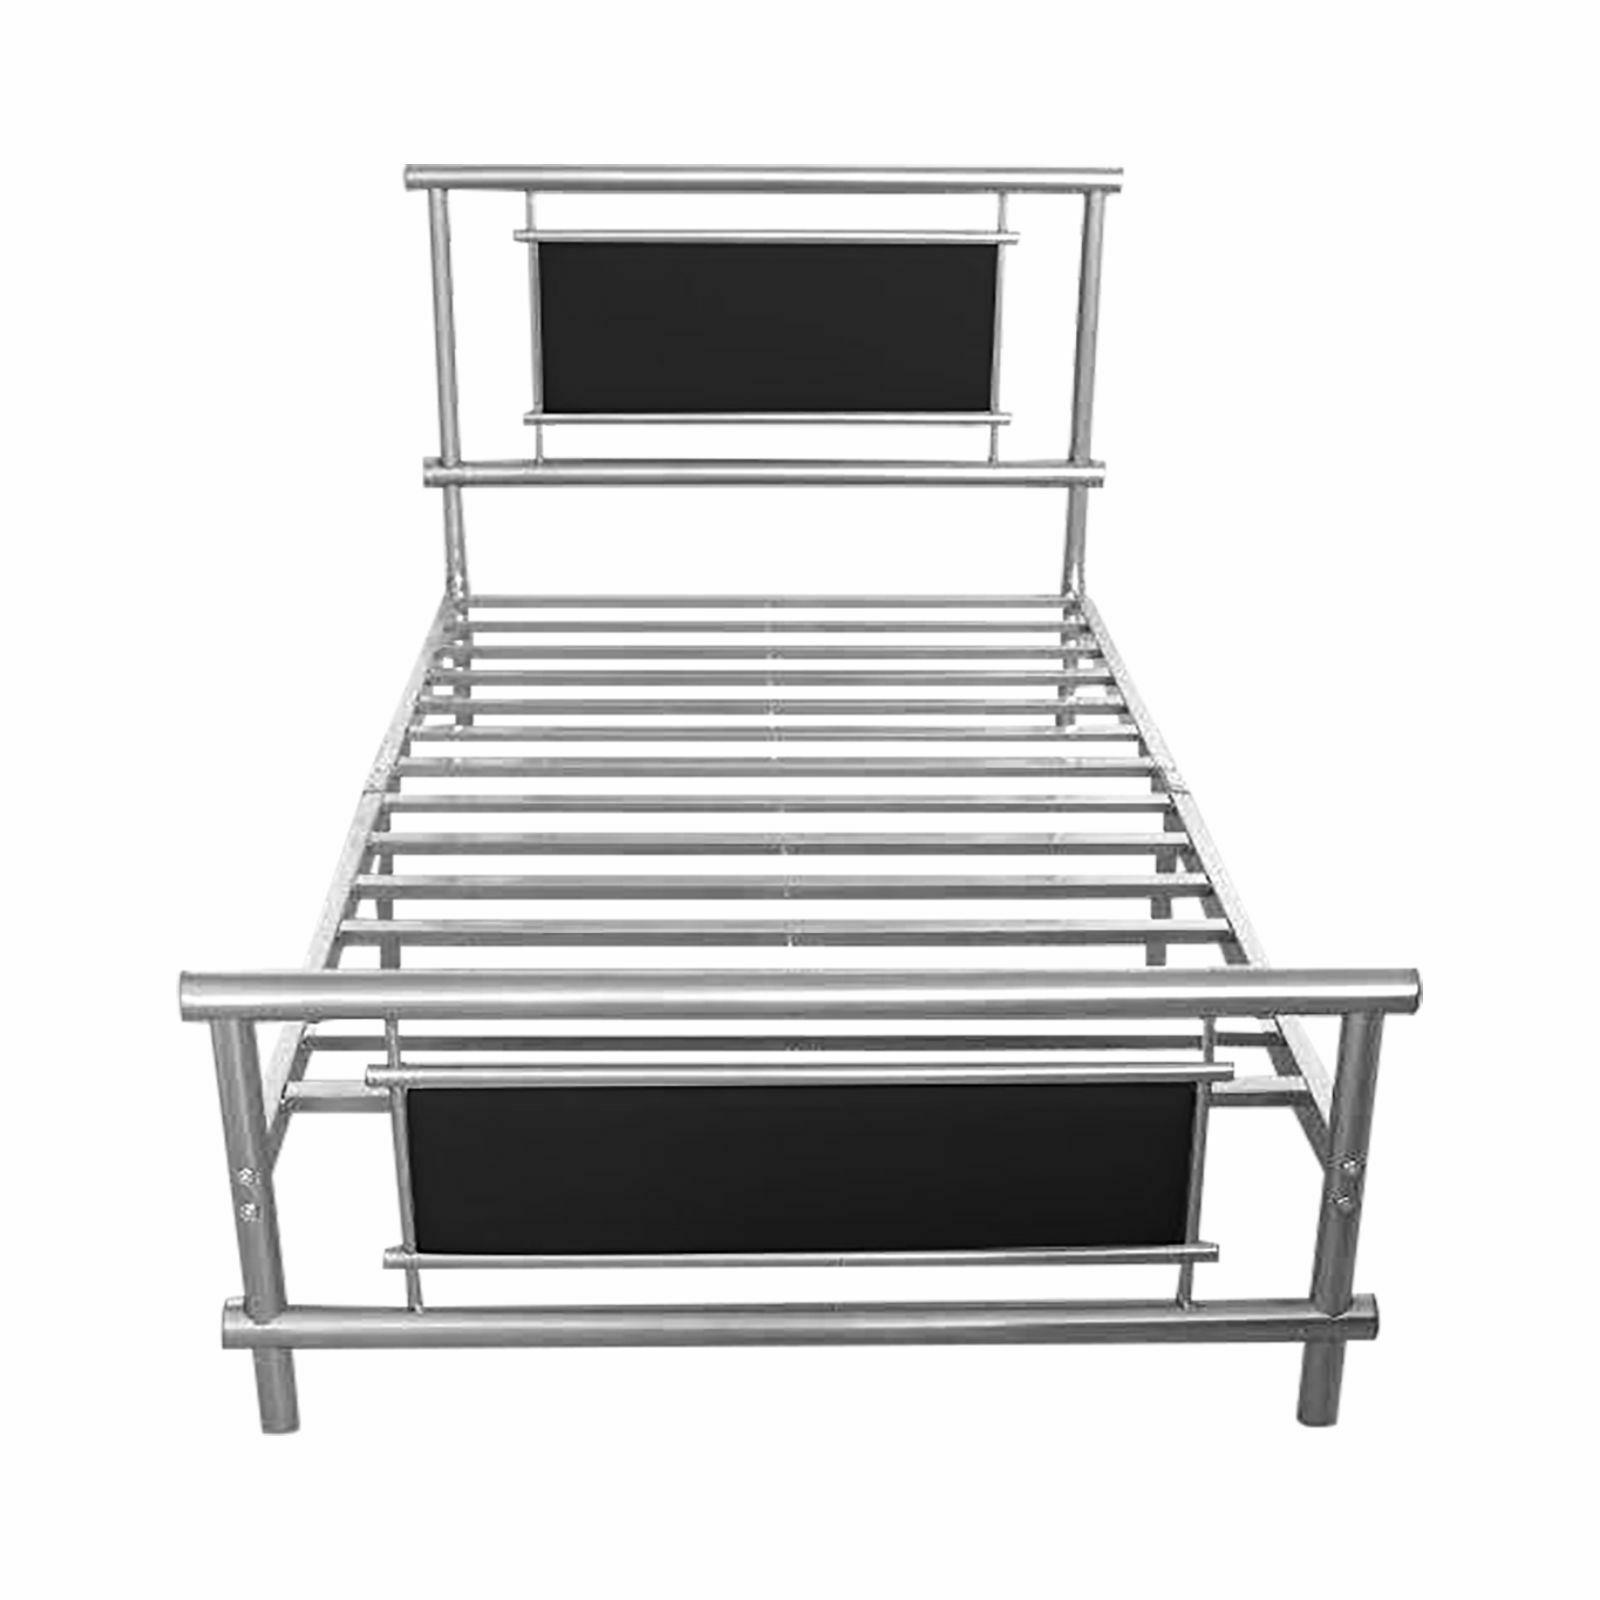 Metal Bed Frame | Single King Size Double Beds Steel 4 FT ...